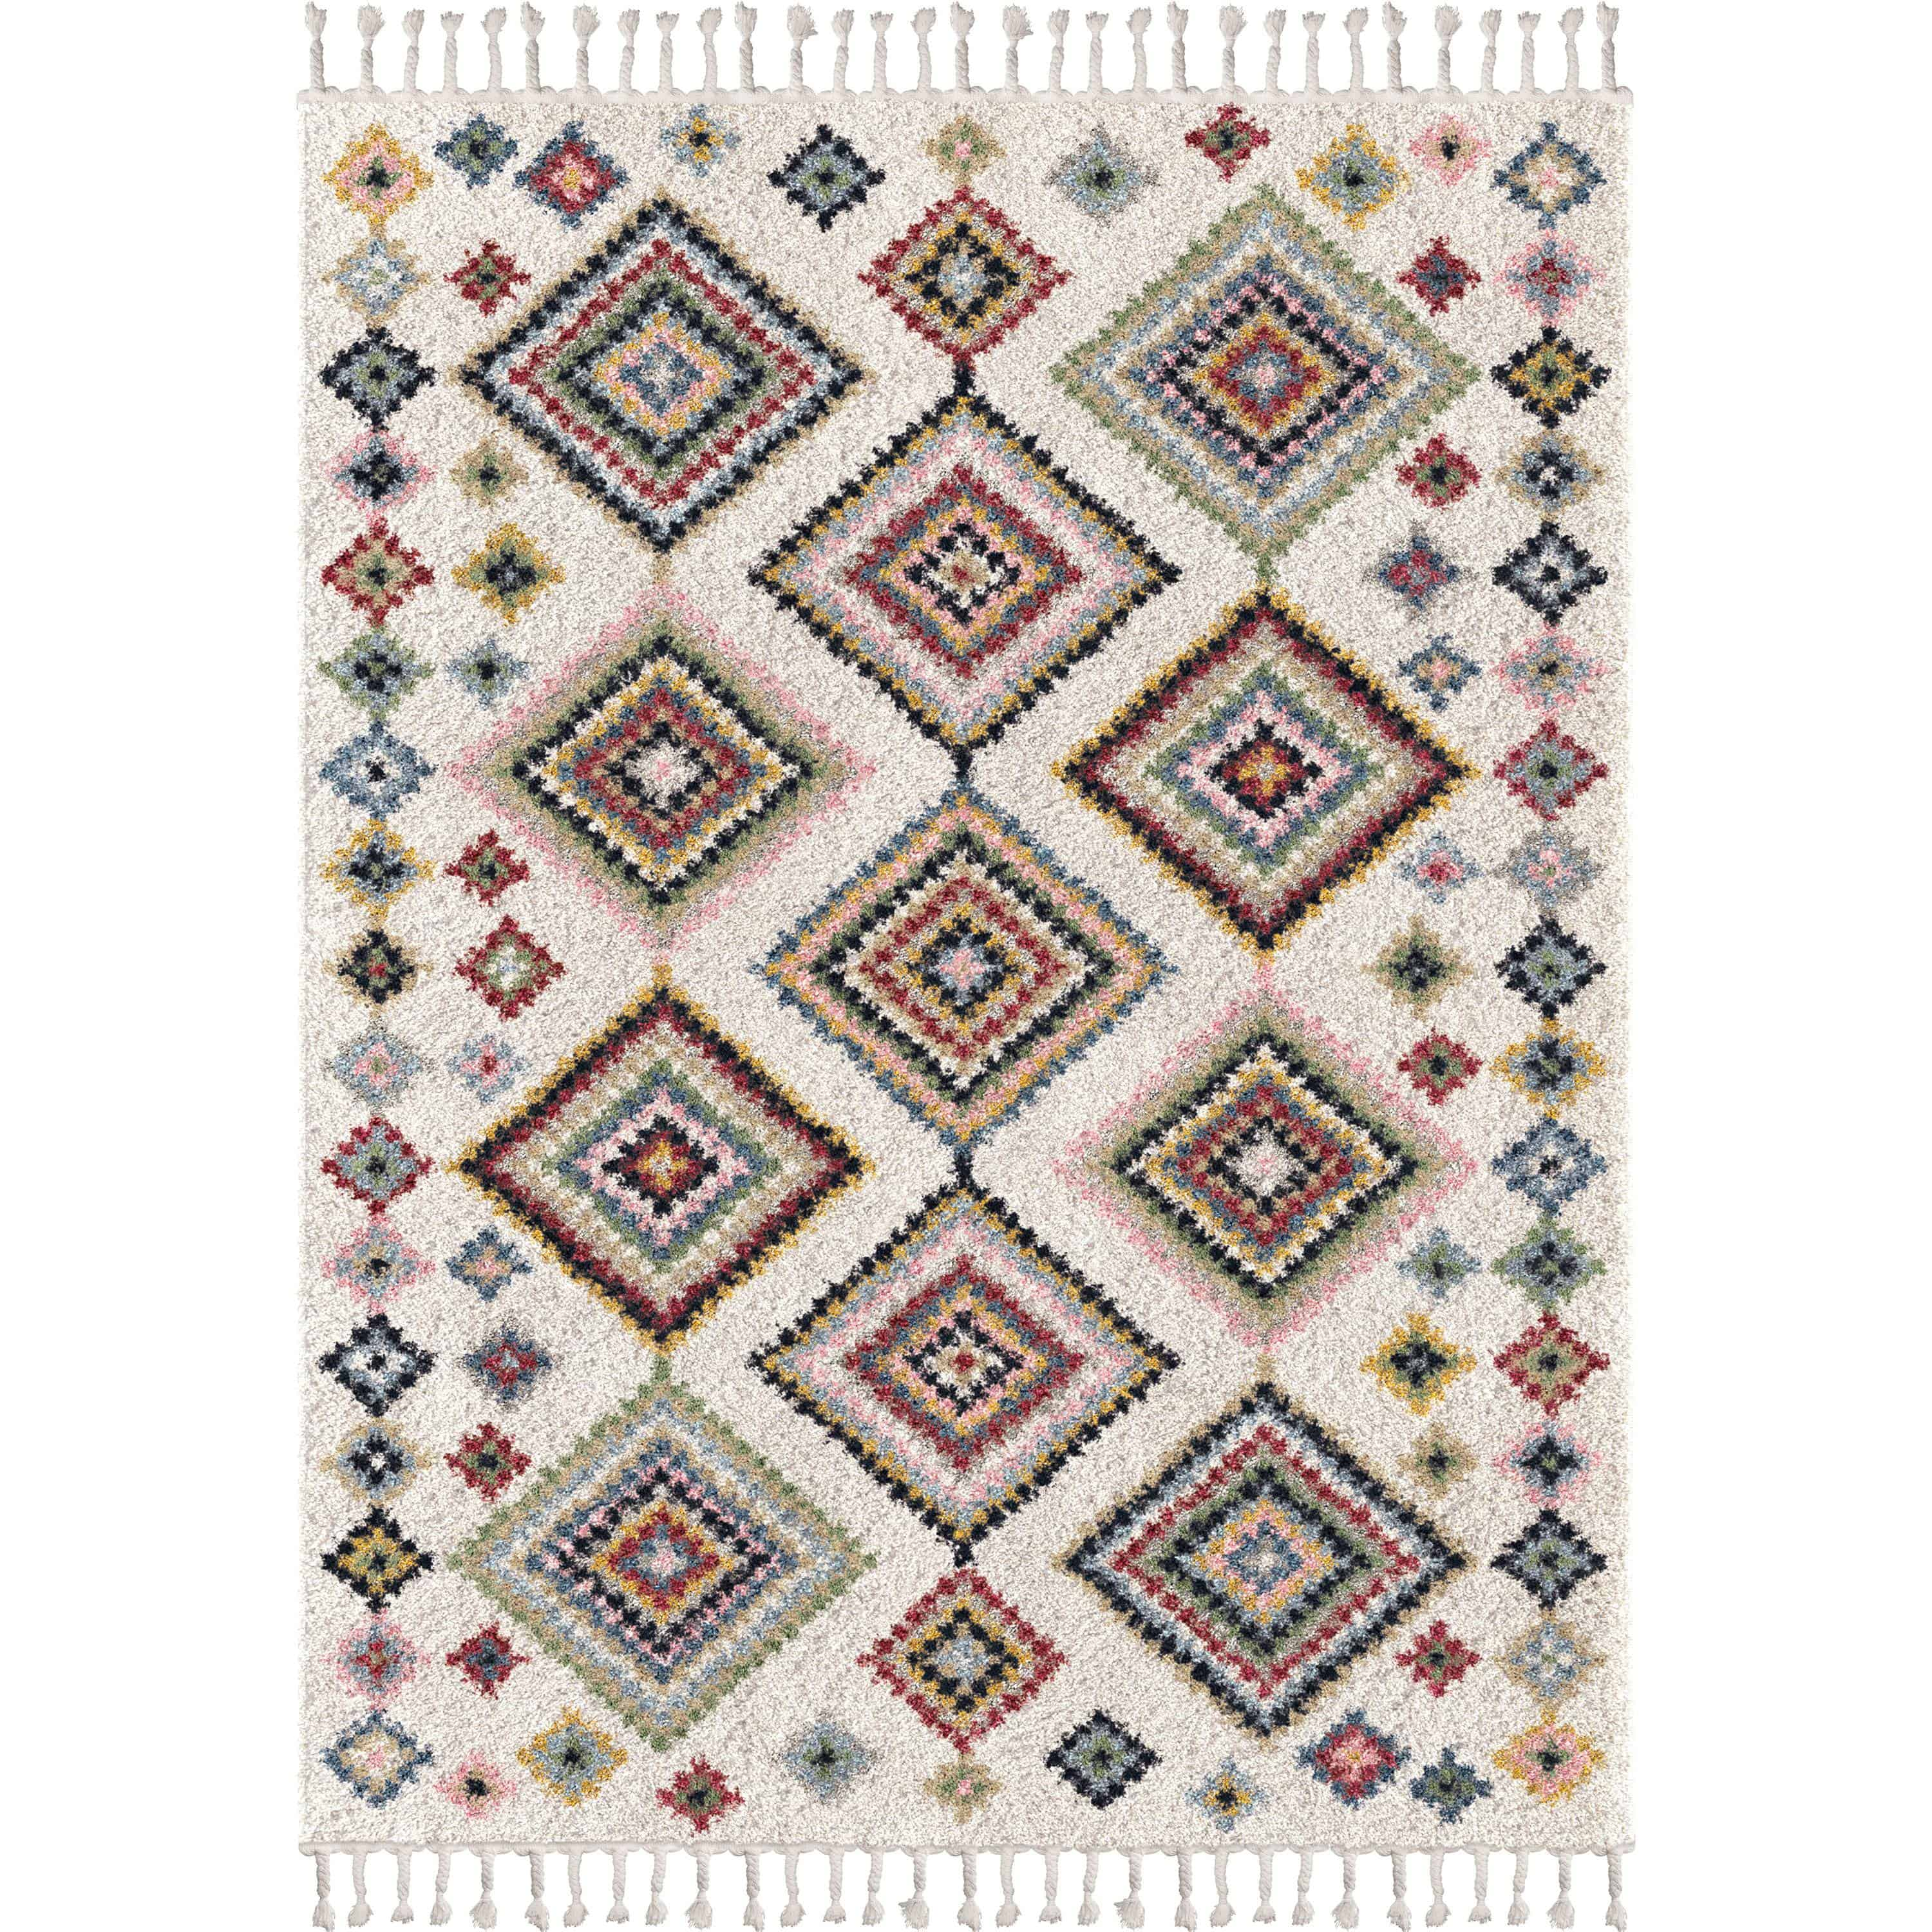 Large Rugs Sydney Orian Rugs Your Creative And Innovative Rug Partner